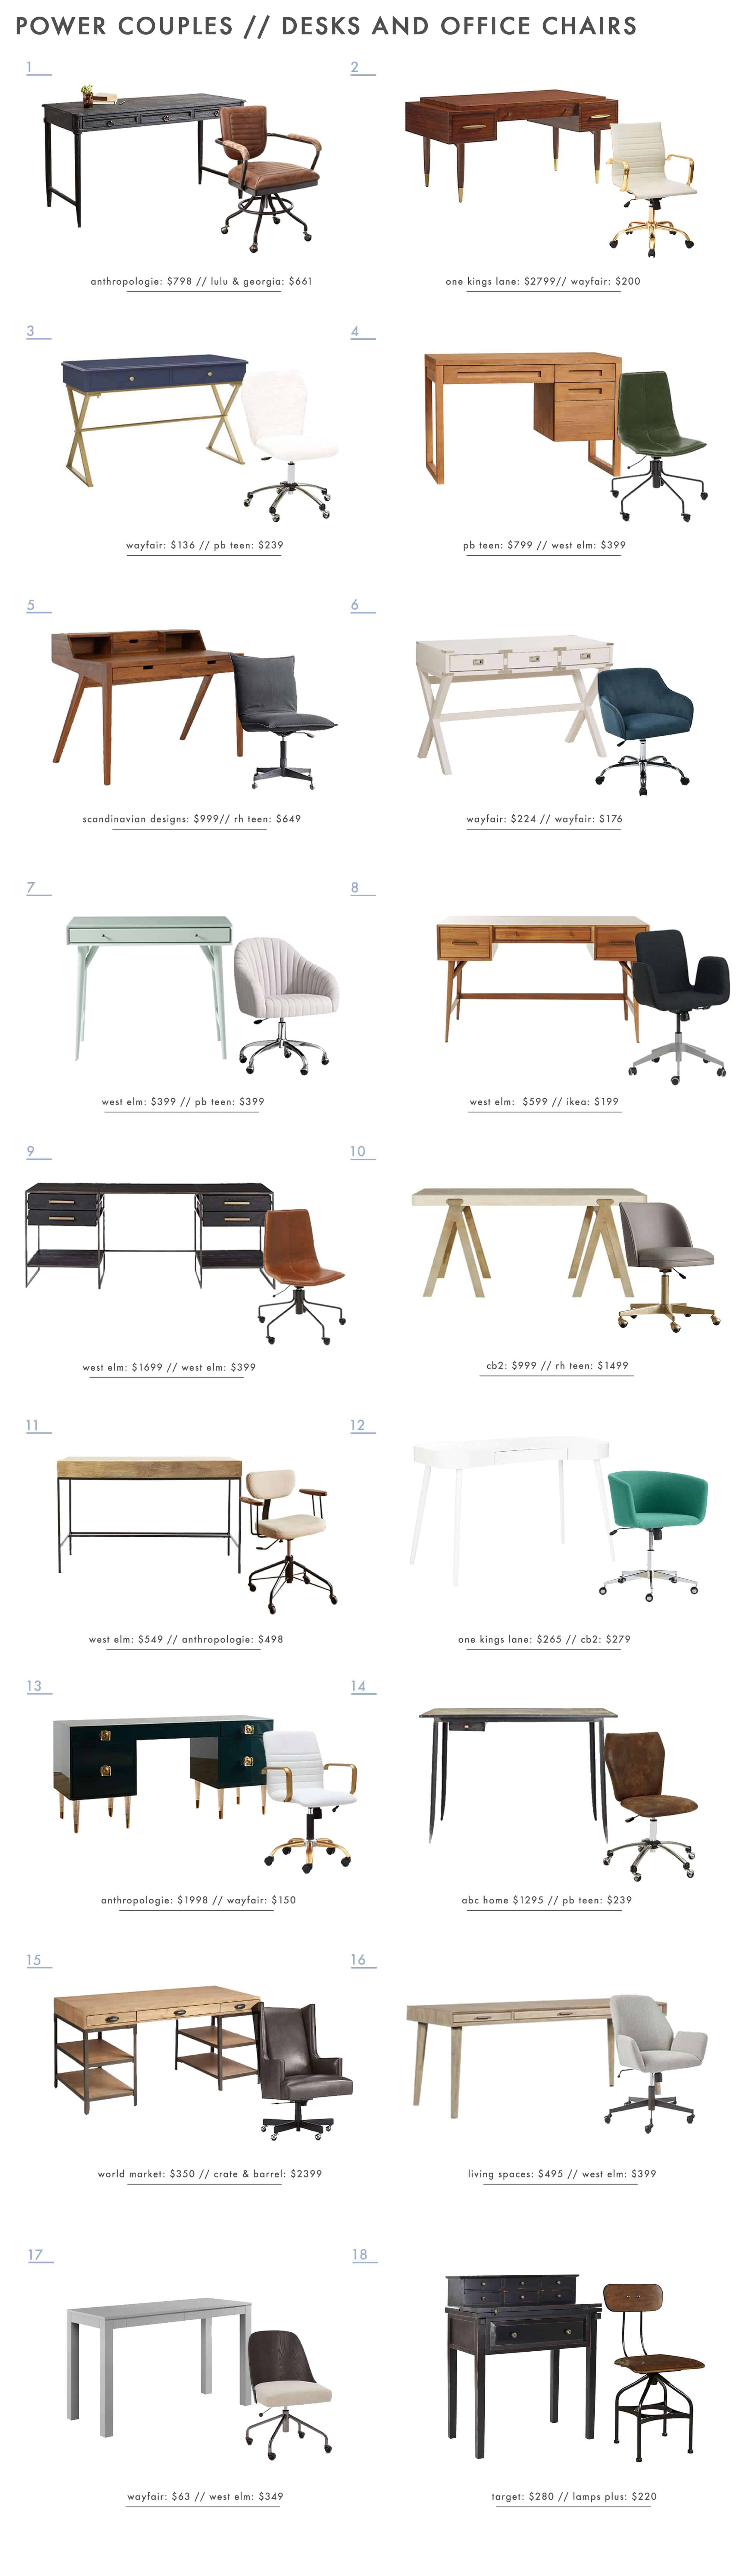 Emily Henderson Power Couples Office Desks Office Chairs 2x2 2